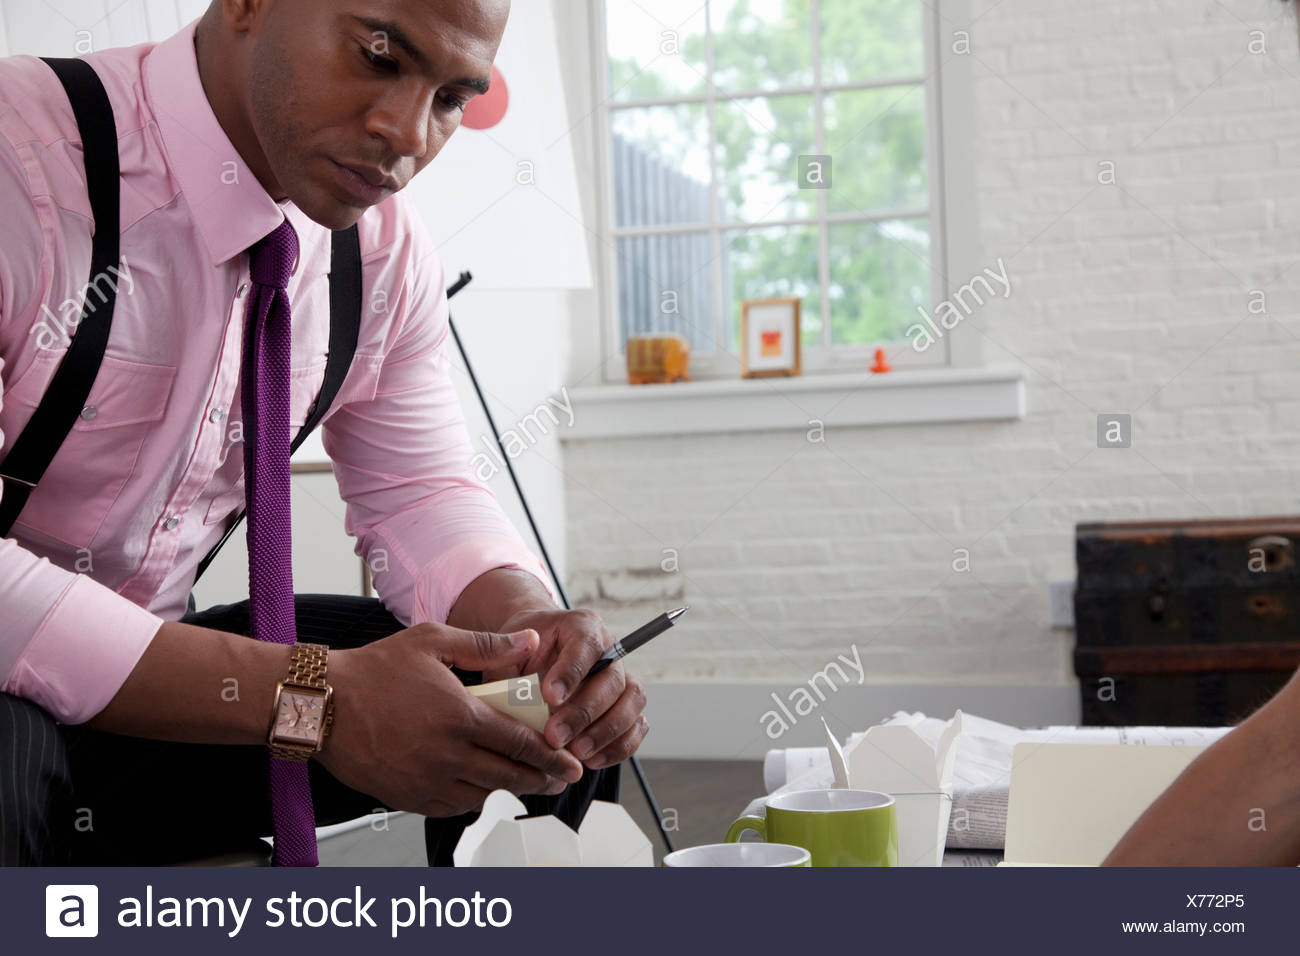 Mid adult office worker looking down at paperwork on table - Stock Image